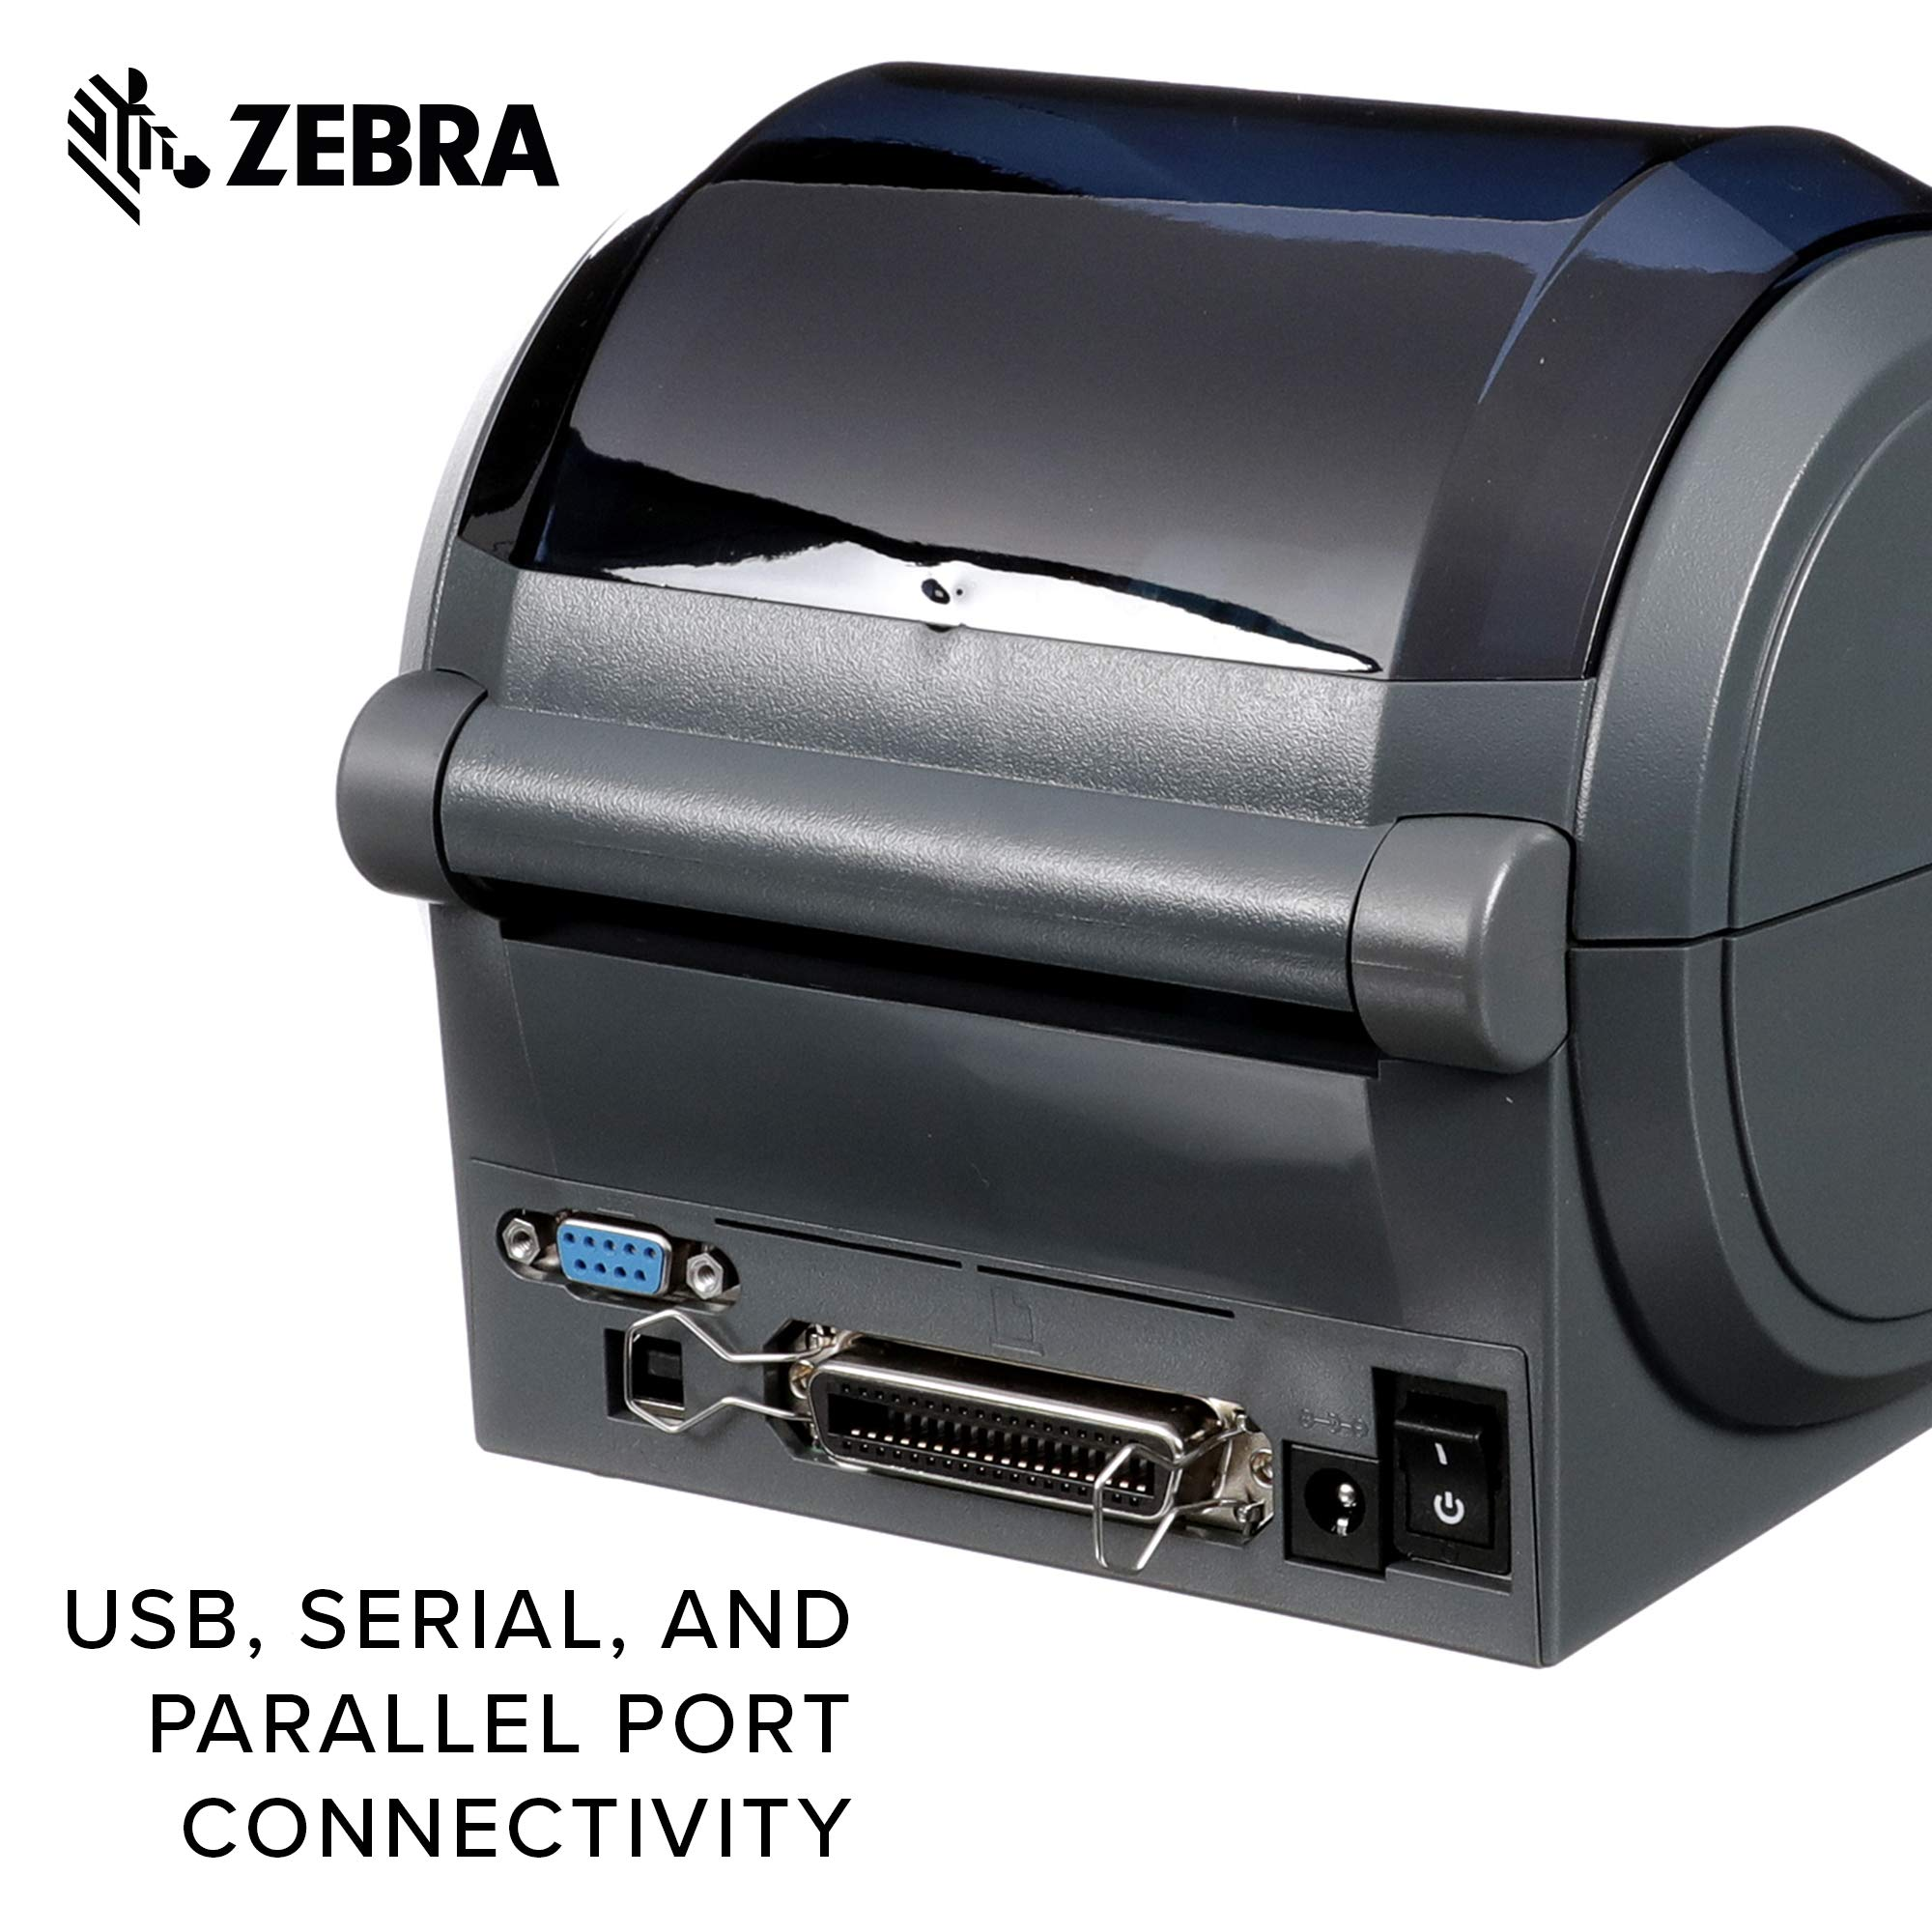 Zebra - GX420d Direct Thermal Desktop Printer for Labels, Receipts, Barcodes, Tags, and Wrist Bands - Print Width of 4 in - USB, Serial, and Parallel Port Connectivity (Includes Peeler) by ZebraNet (Image #5)